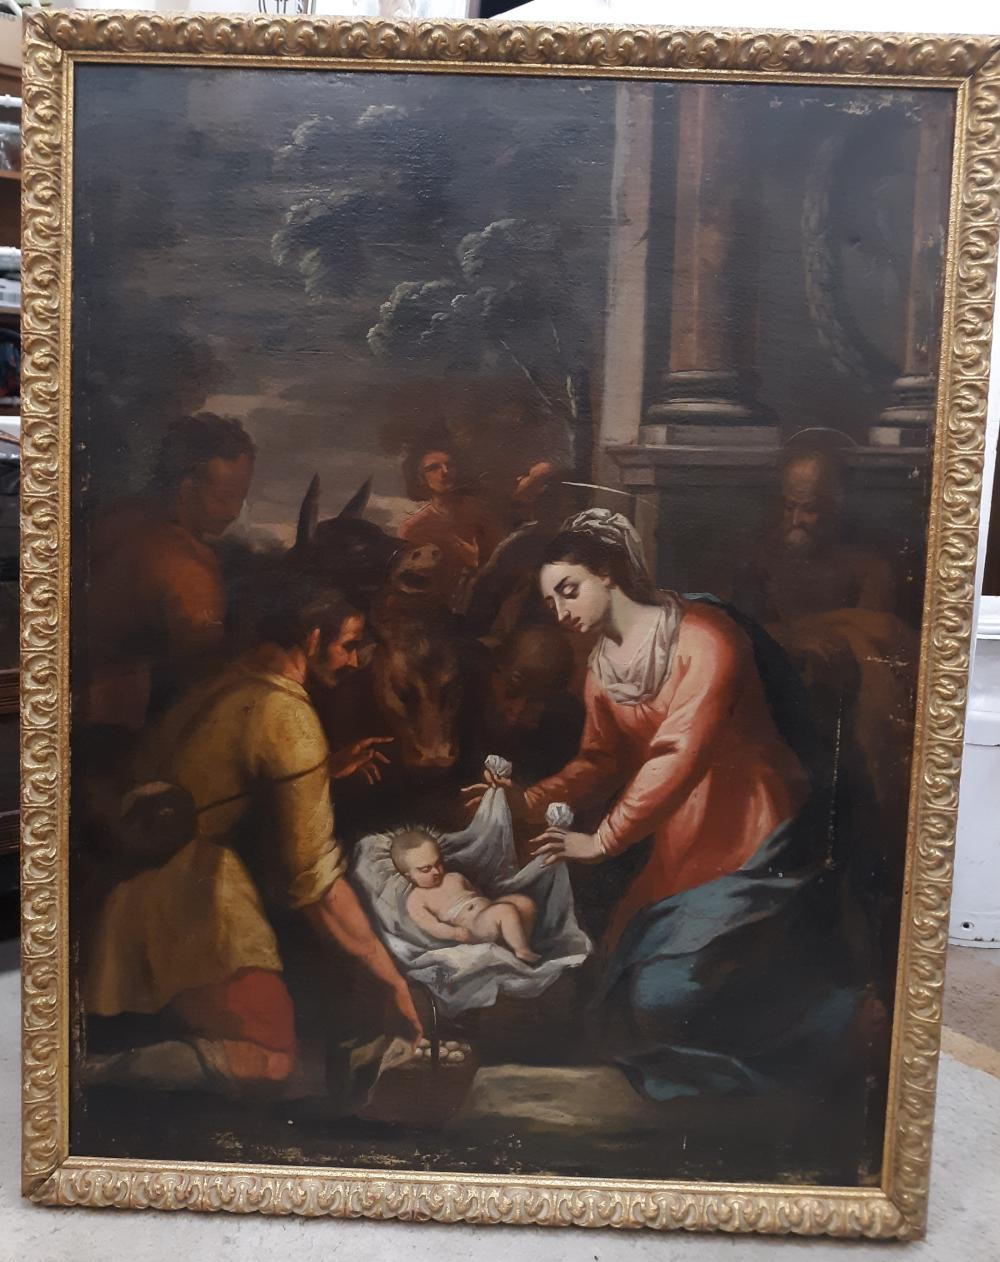 """18TH CENTURY ADORATION OF THE MAGI OIL ON CANVAS. ARTIST UNKNOWN. 31"""" X 40"""". SOME LIGHT AREAS ON THE EDGE. VARNISHED OVERALL. NEWER FRAME"""